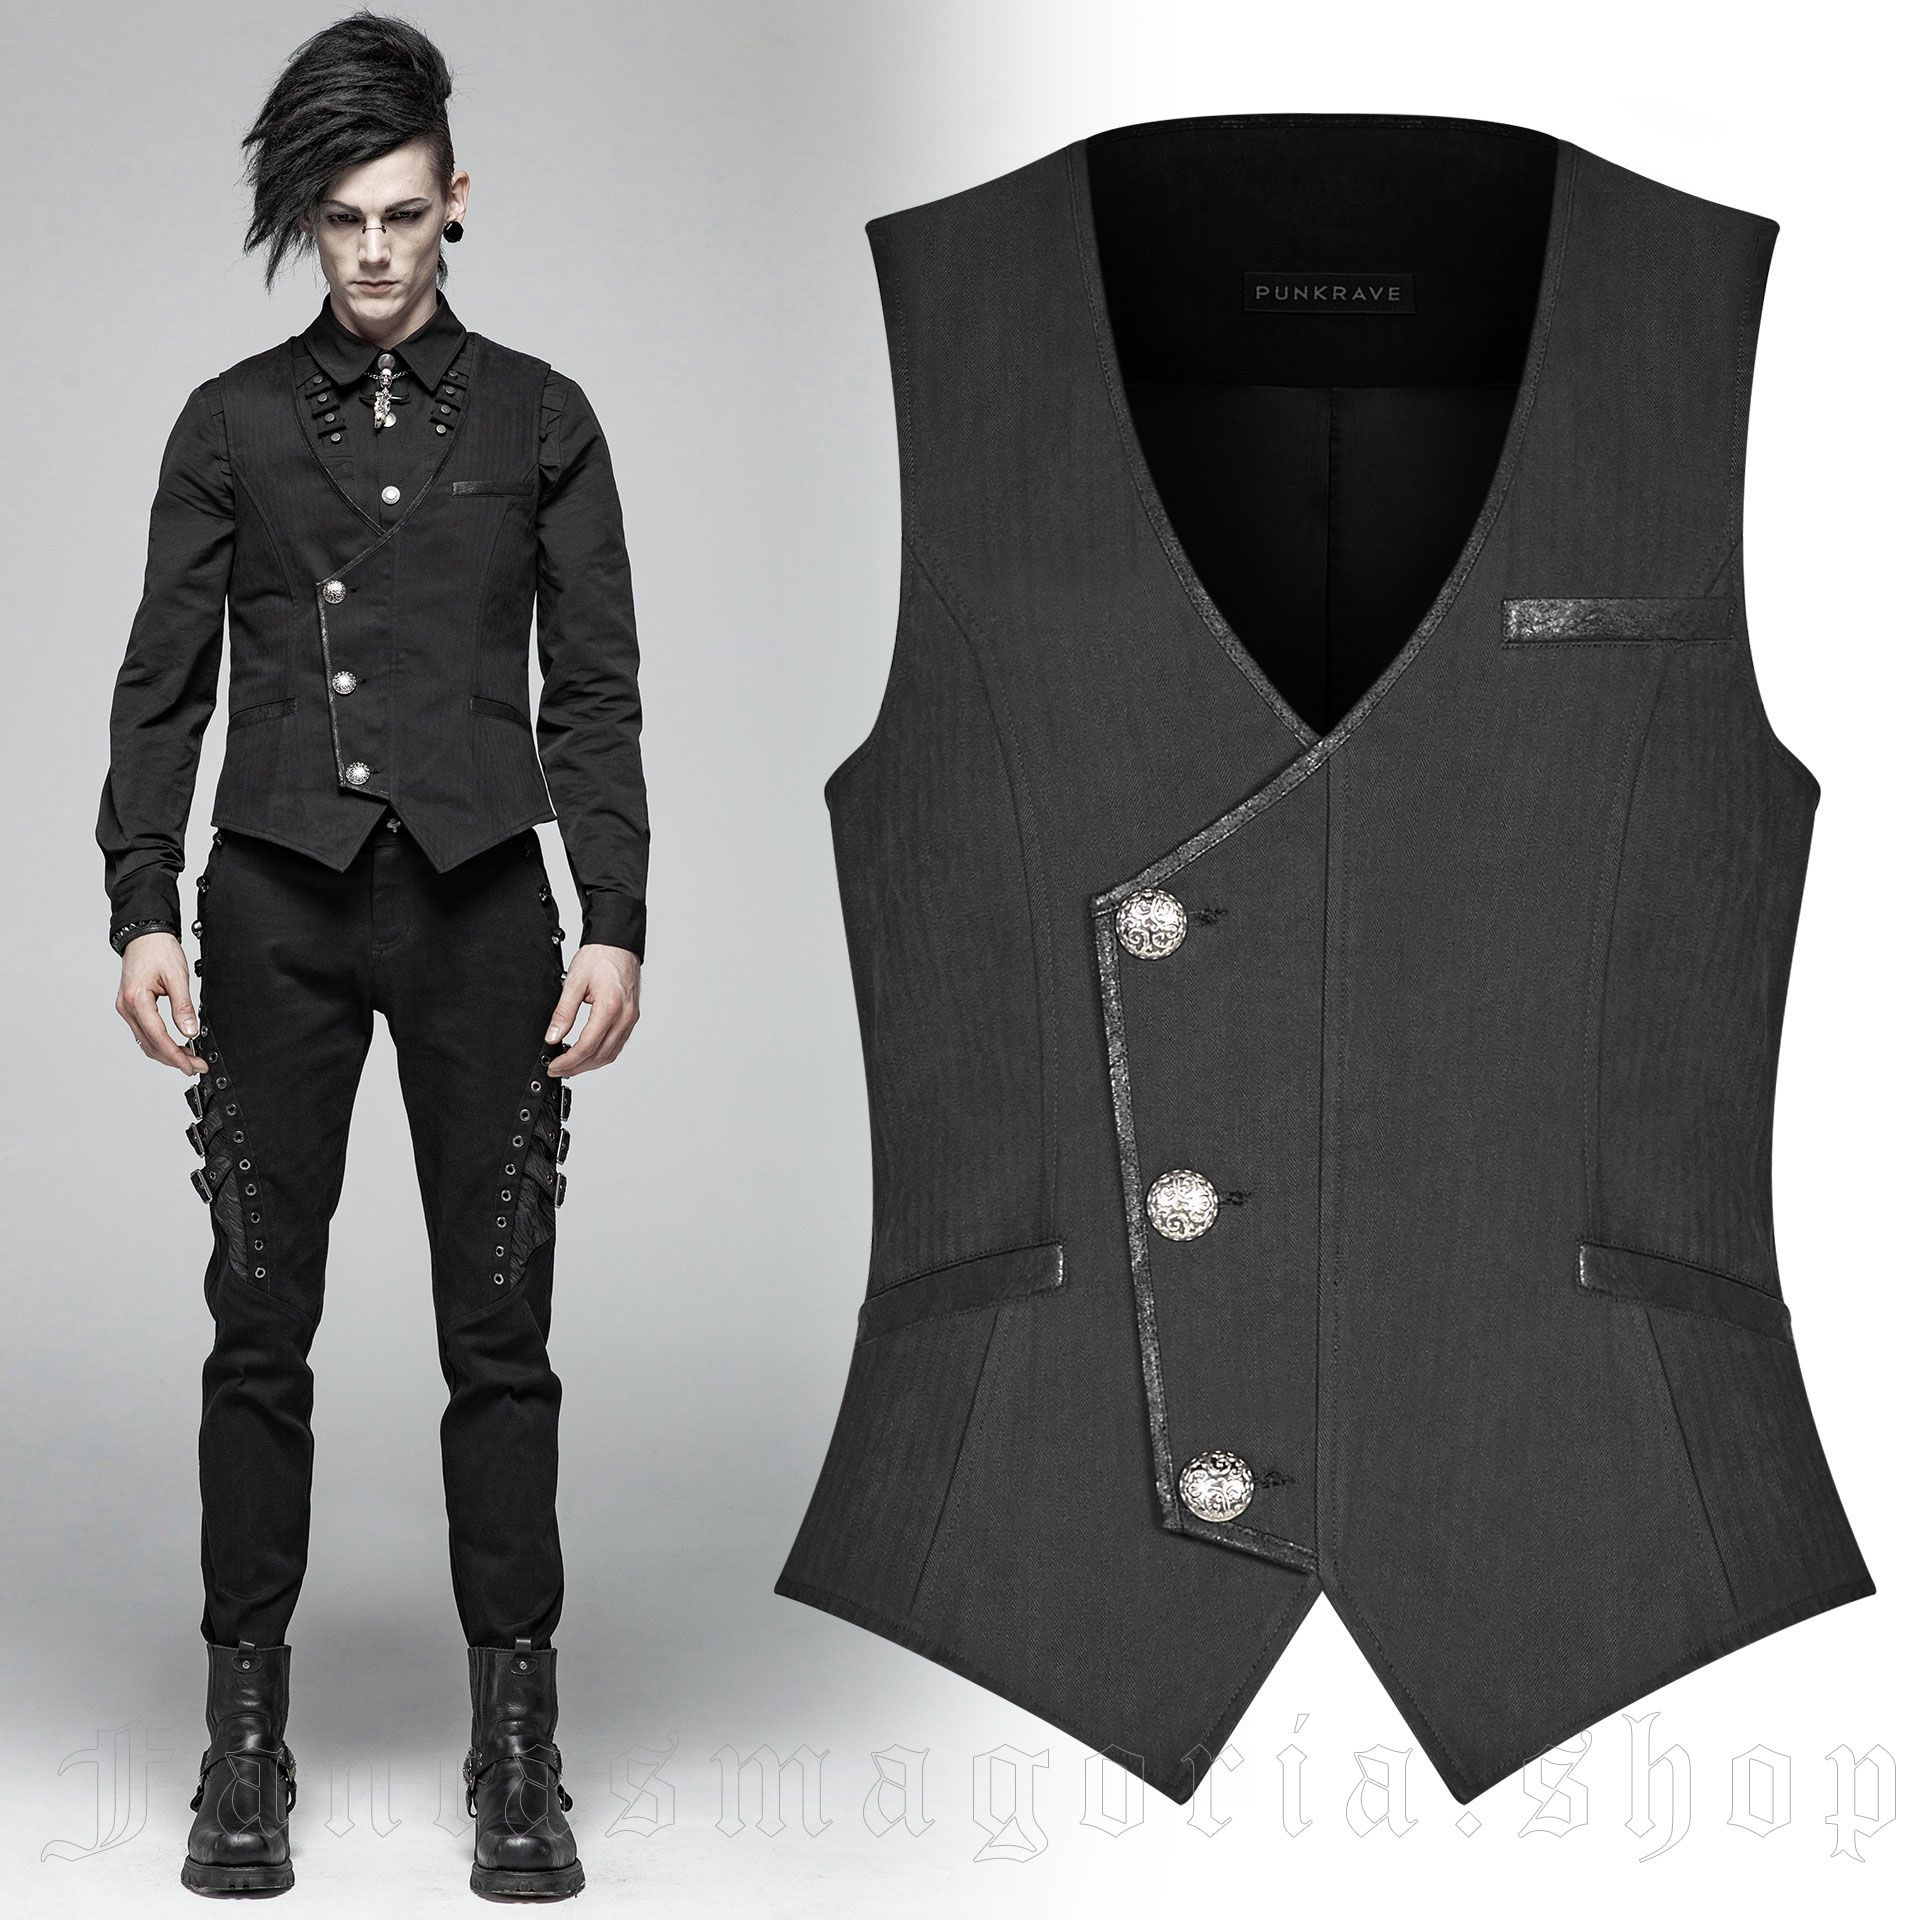 men's Nomeon Vest by PUNK RAVE brand, code: WY-994